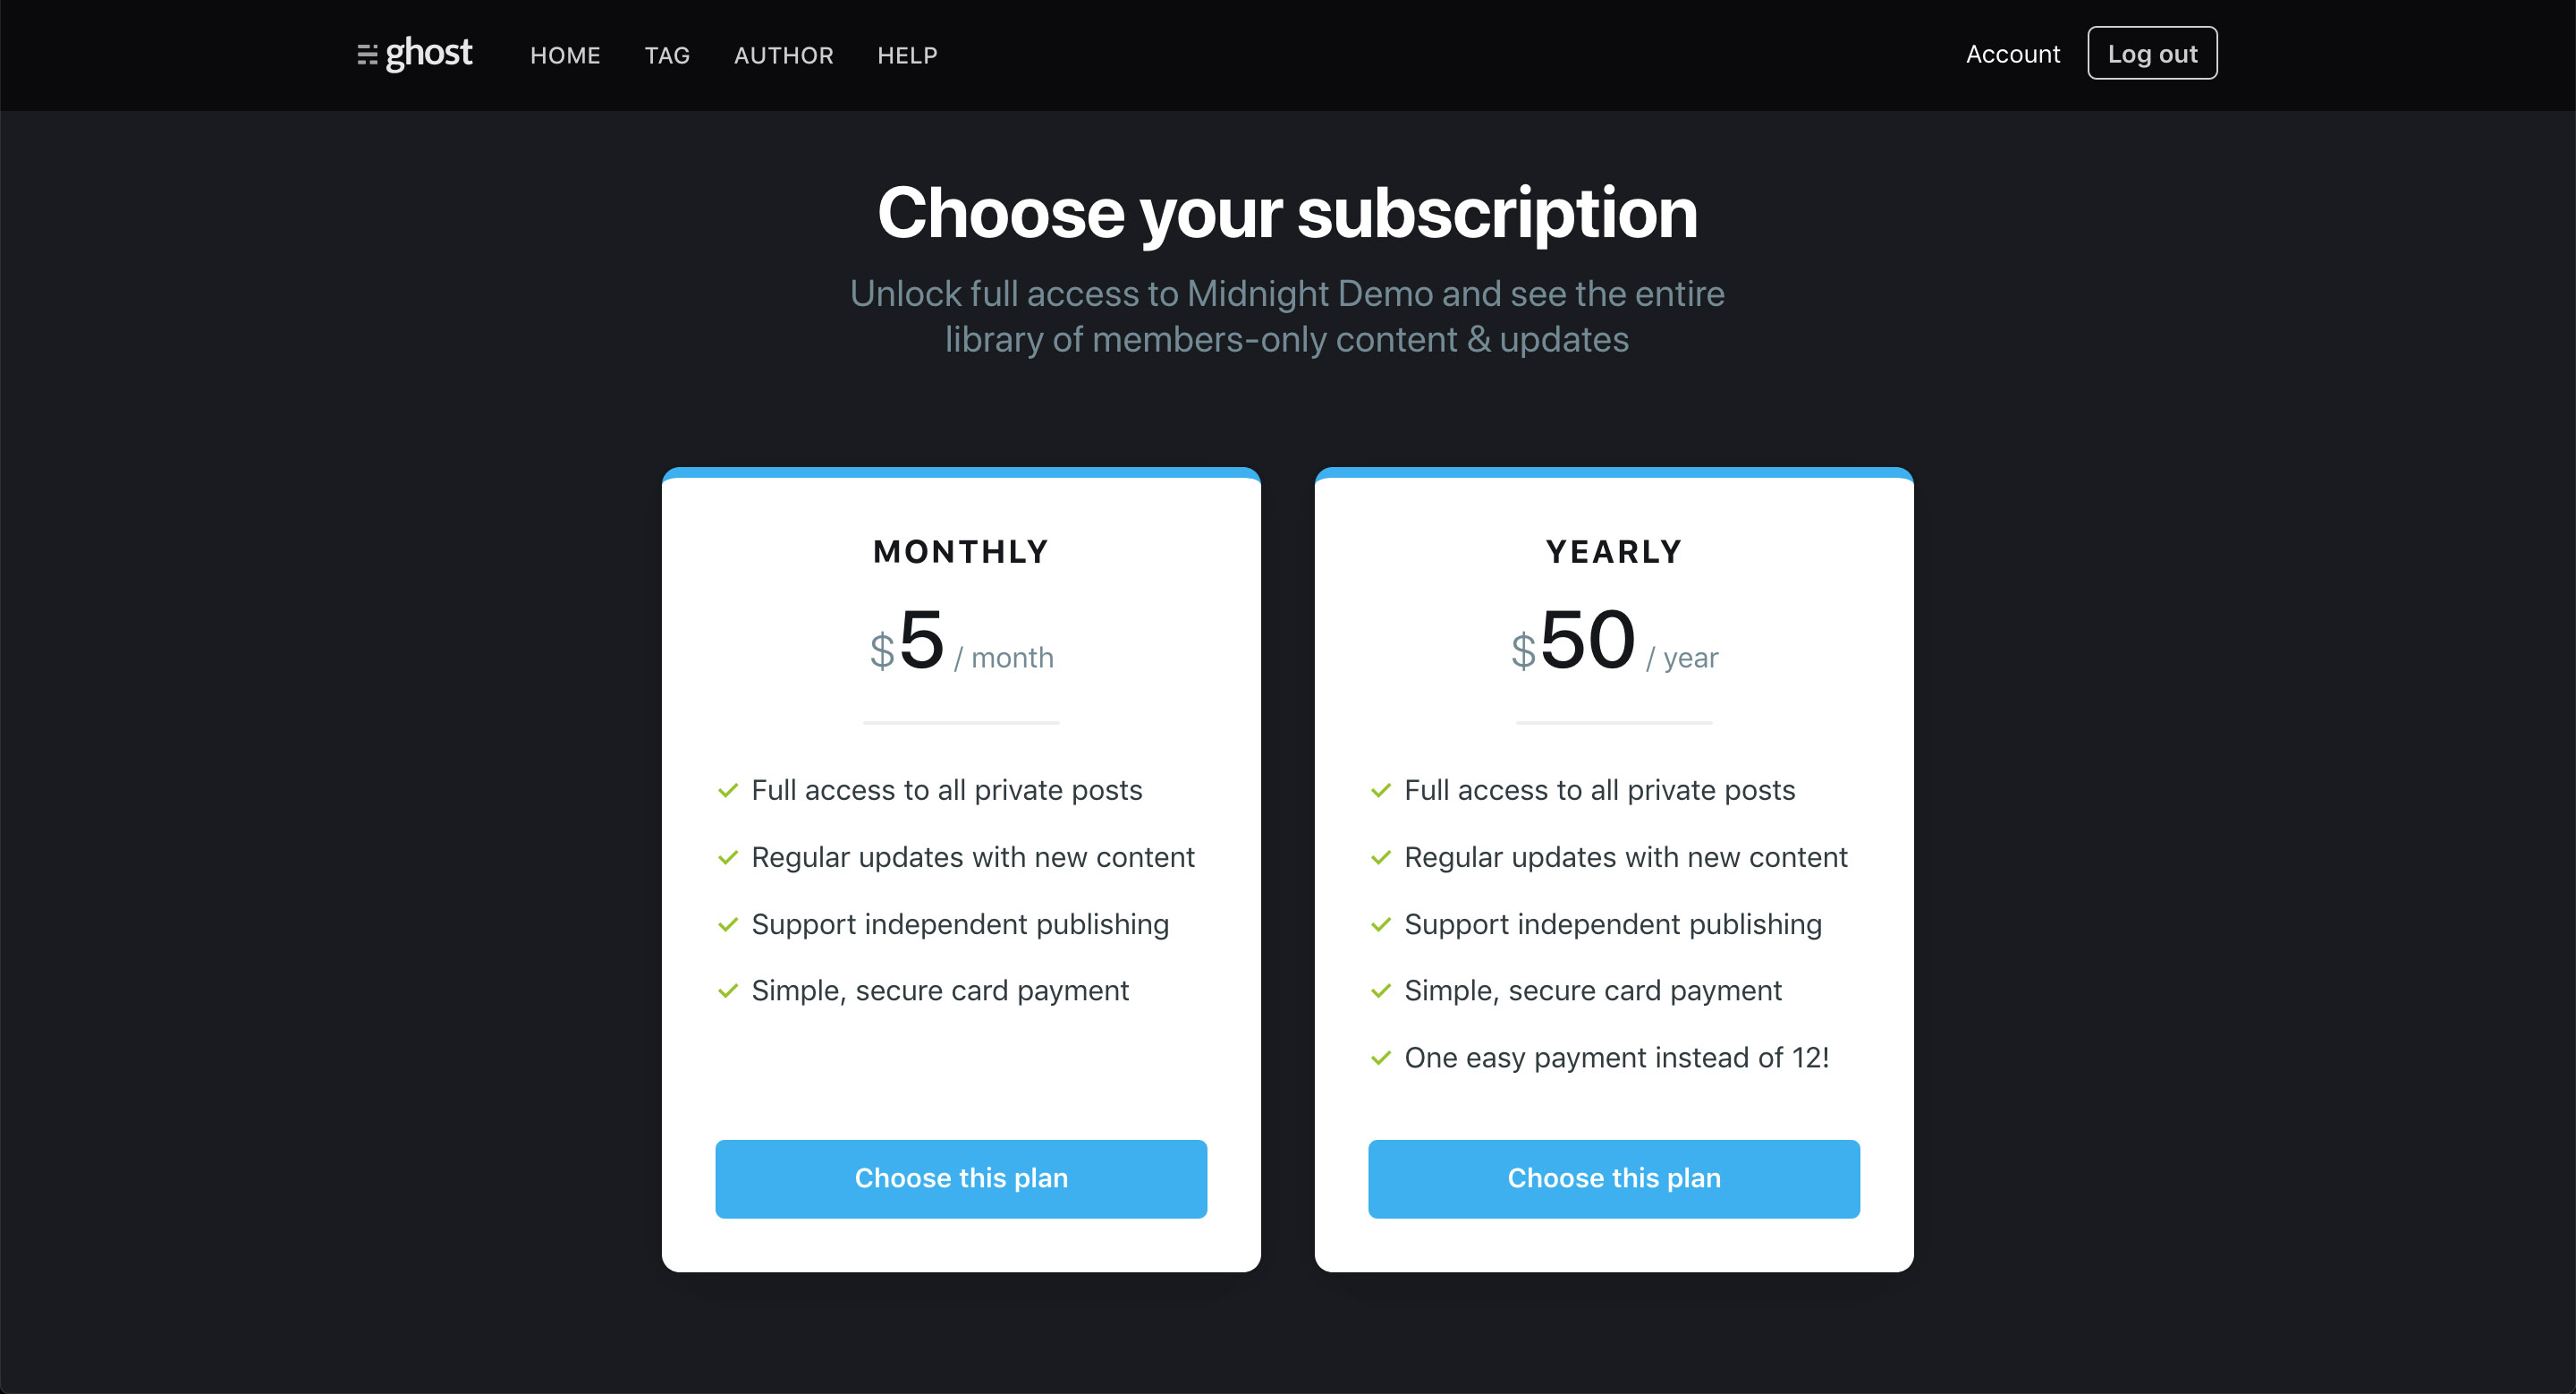 Ghost version 3 now offers subscriptions